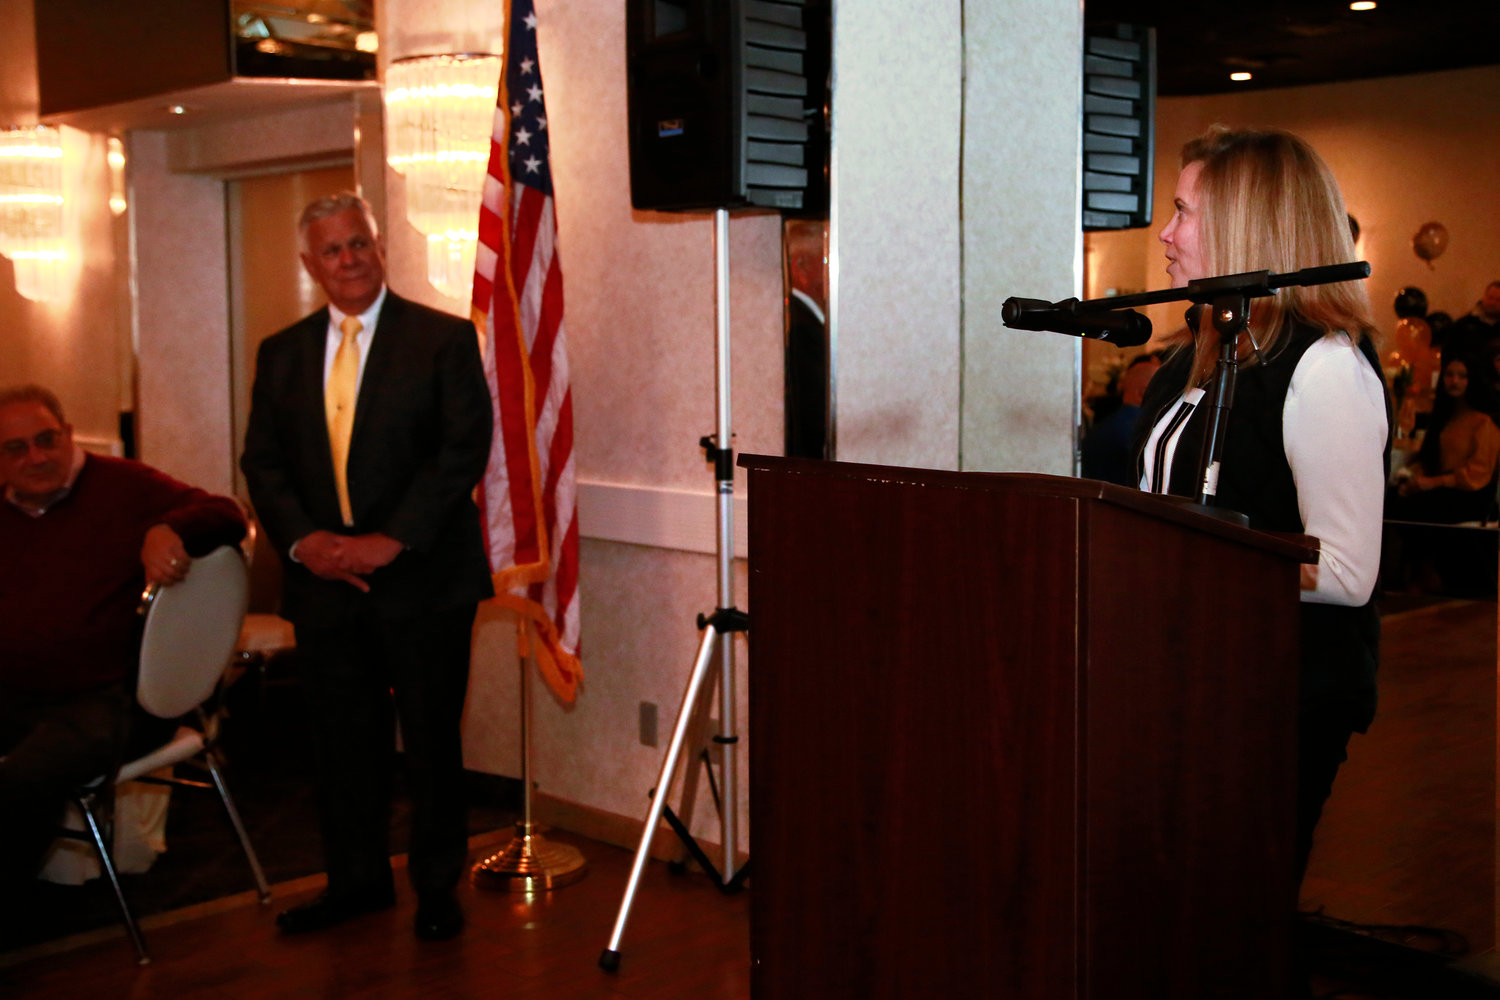 Town Supervisor Laura Gillen thanked Kemnitzer for his years of service to the organization.